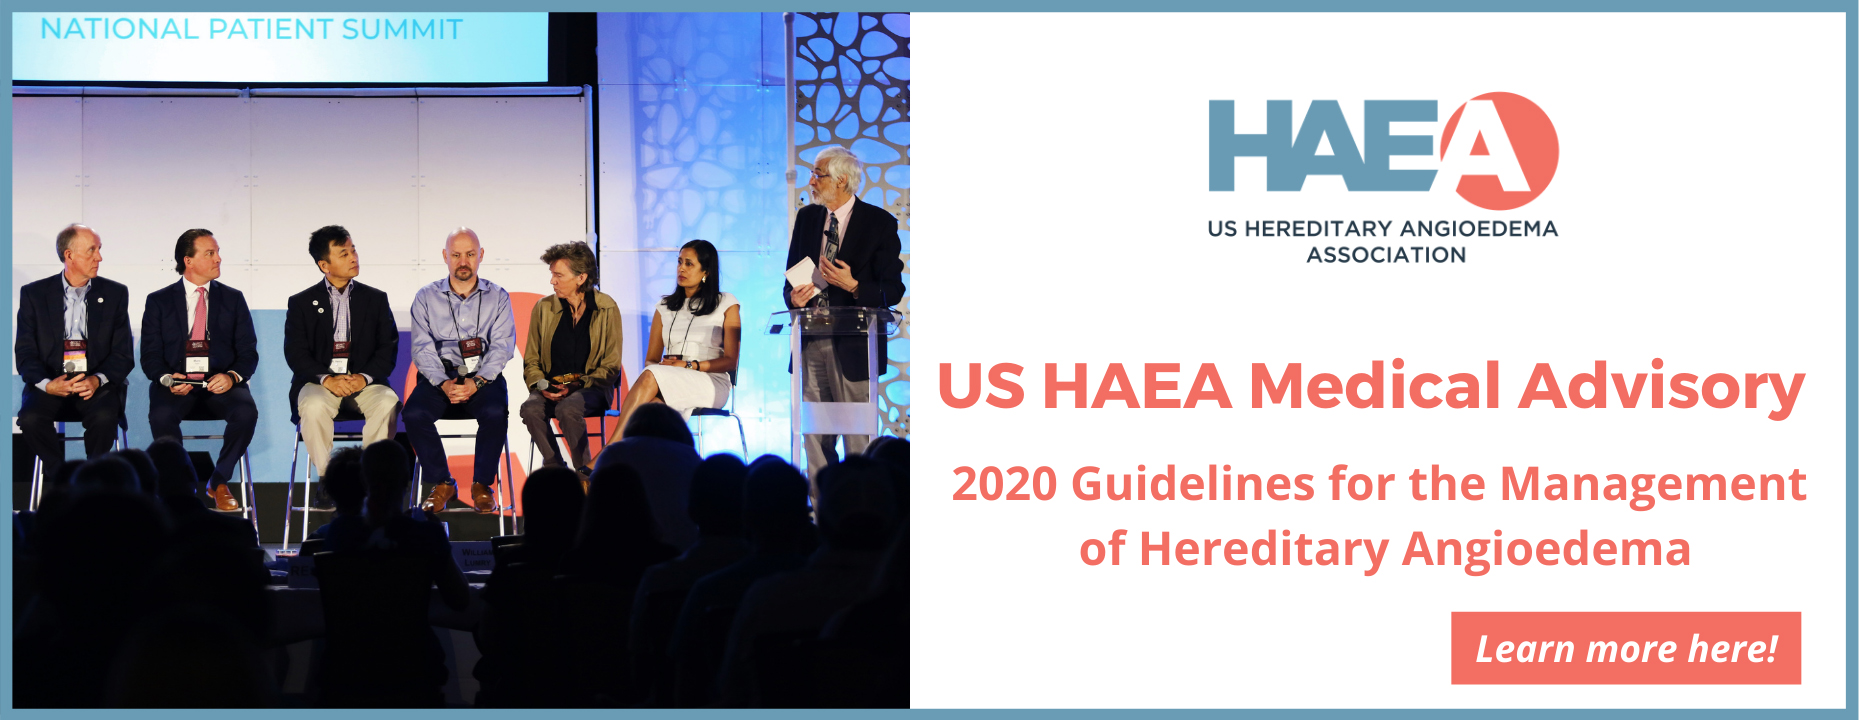 New 2020 MAB Guidelines for the Management of HAE